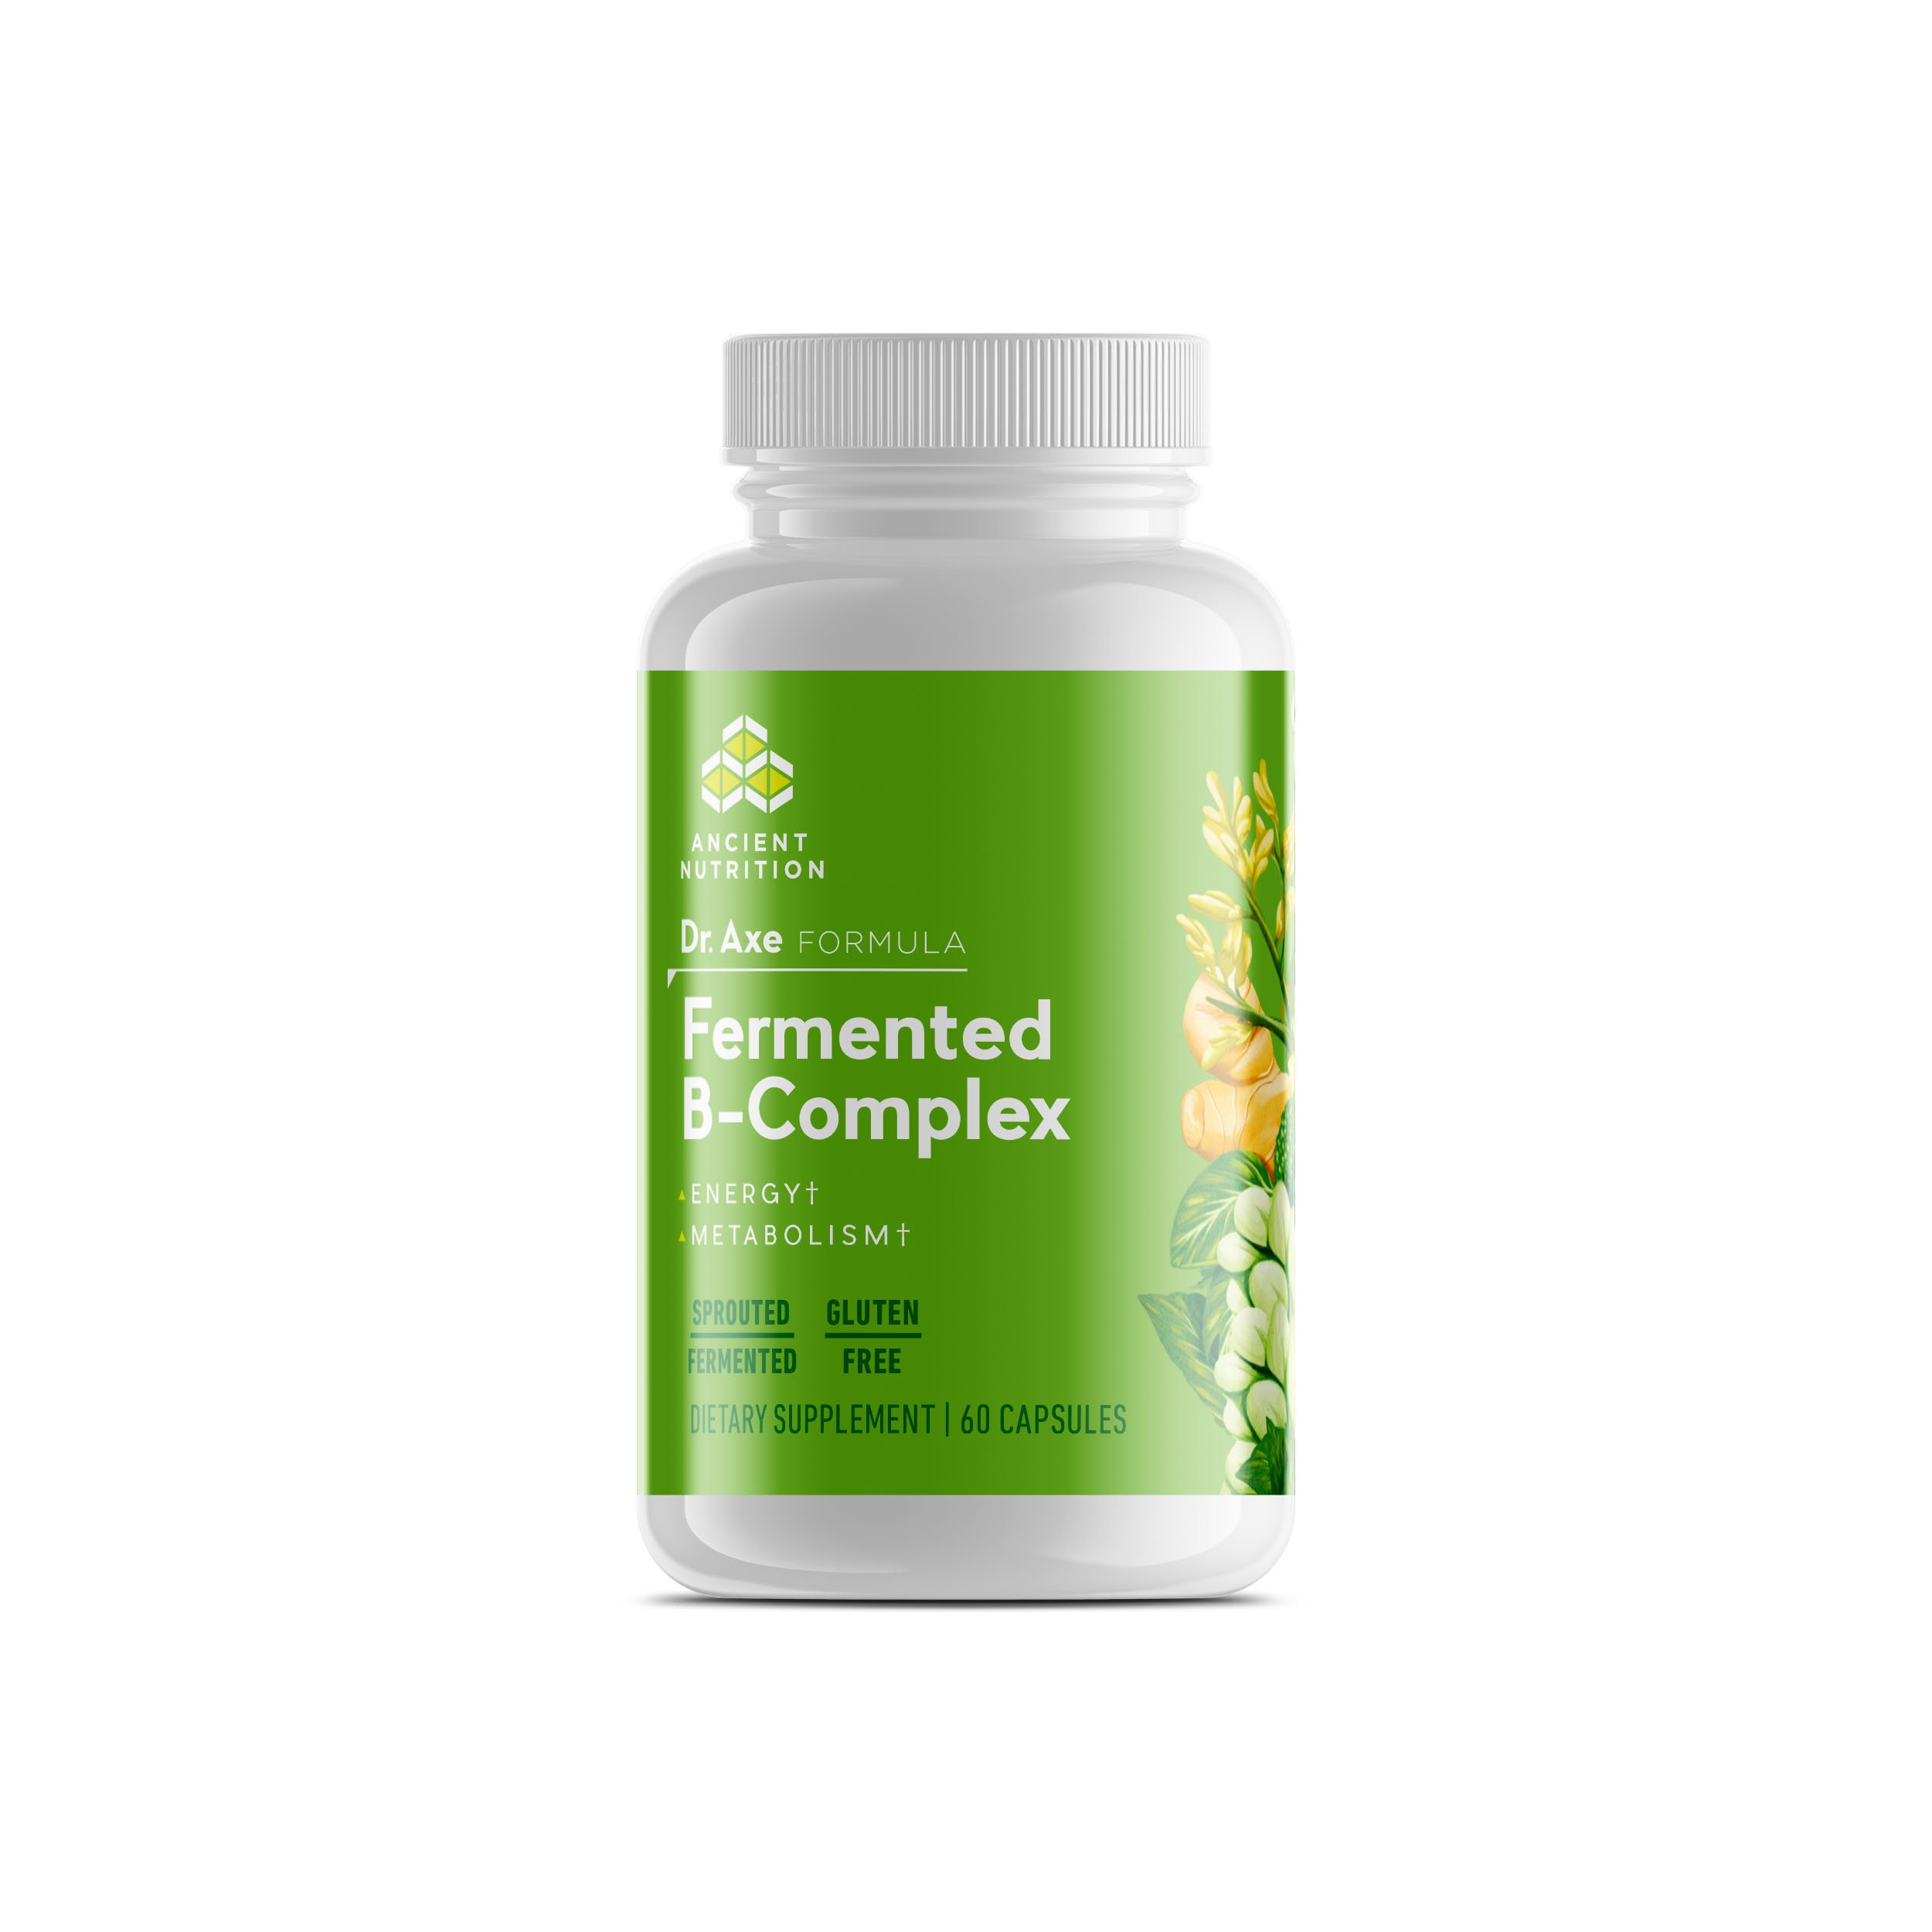 Ancient Nutrition Fermented B-Complex, 60 Capsules - A Blend of Fermented Botanicals and Algae - Dr. Axe Formula